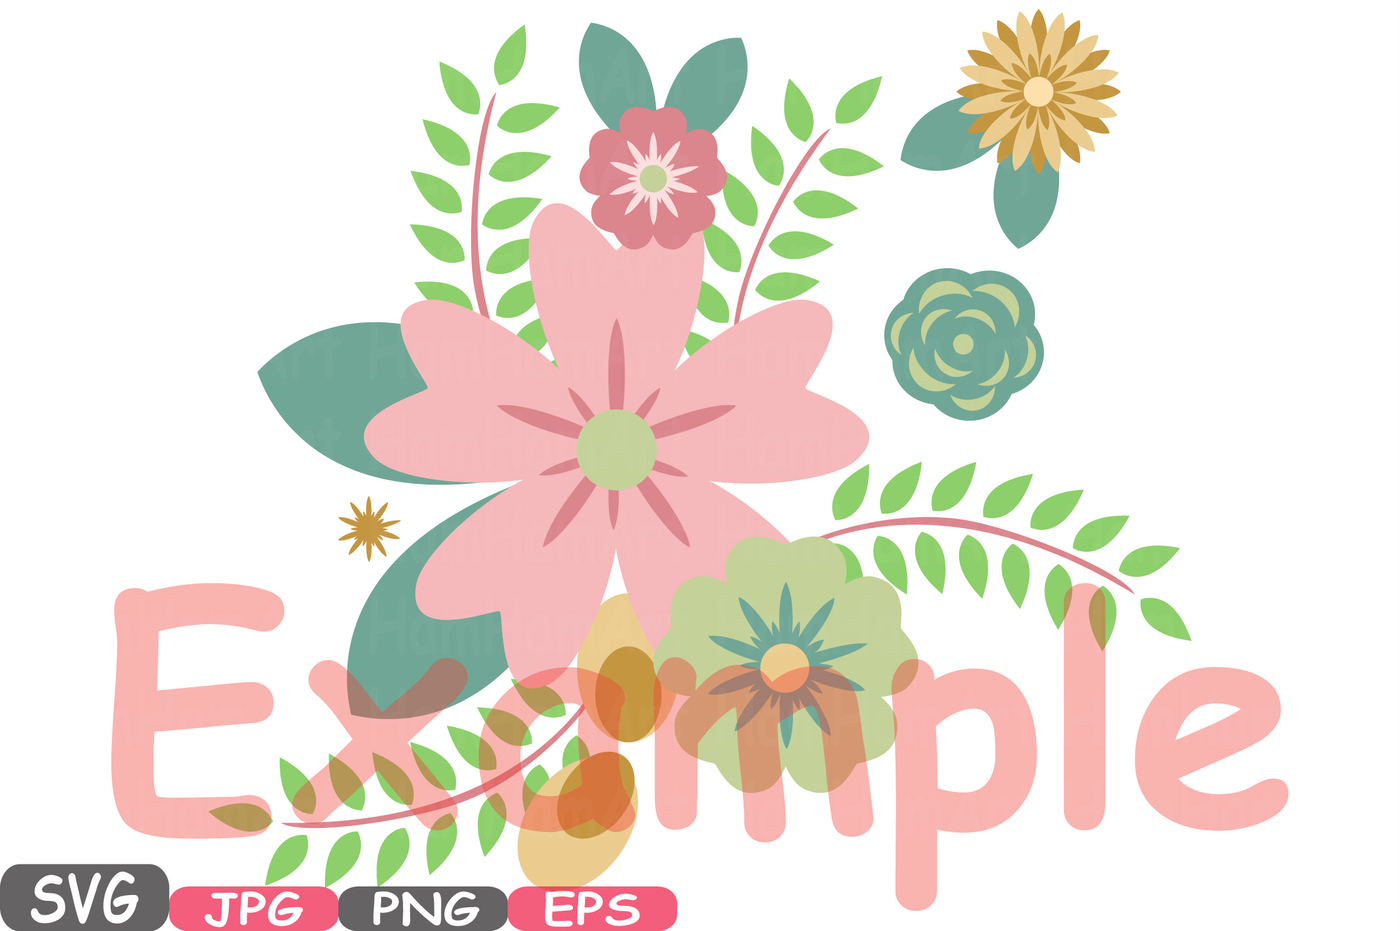 Wedding Flowers Vintage Floral Invitation Cutting Files svg eps png jpg  party colorful Clip Art Vector Graphics Clipart -16SV by HamHamArt |  TheHungryJPEG. PlusPng.com  - Flower PNG Jpg